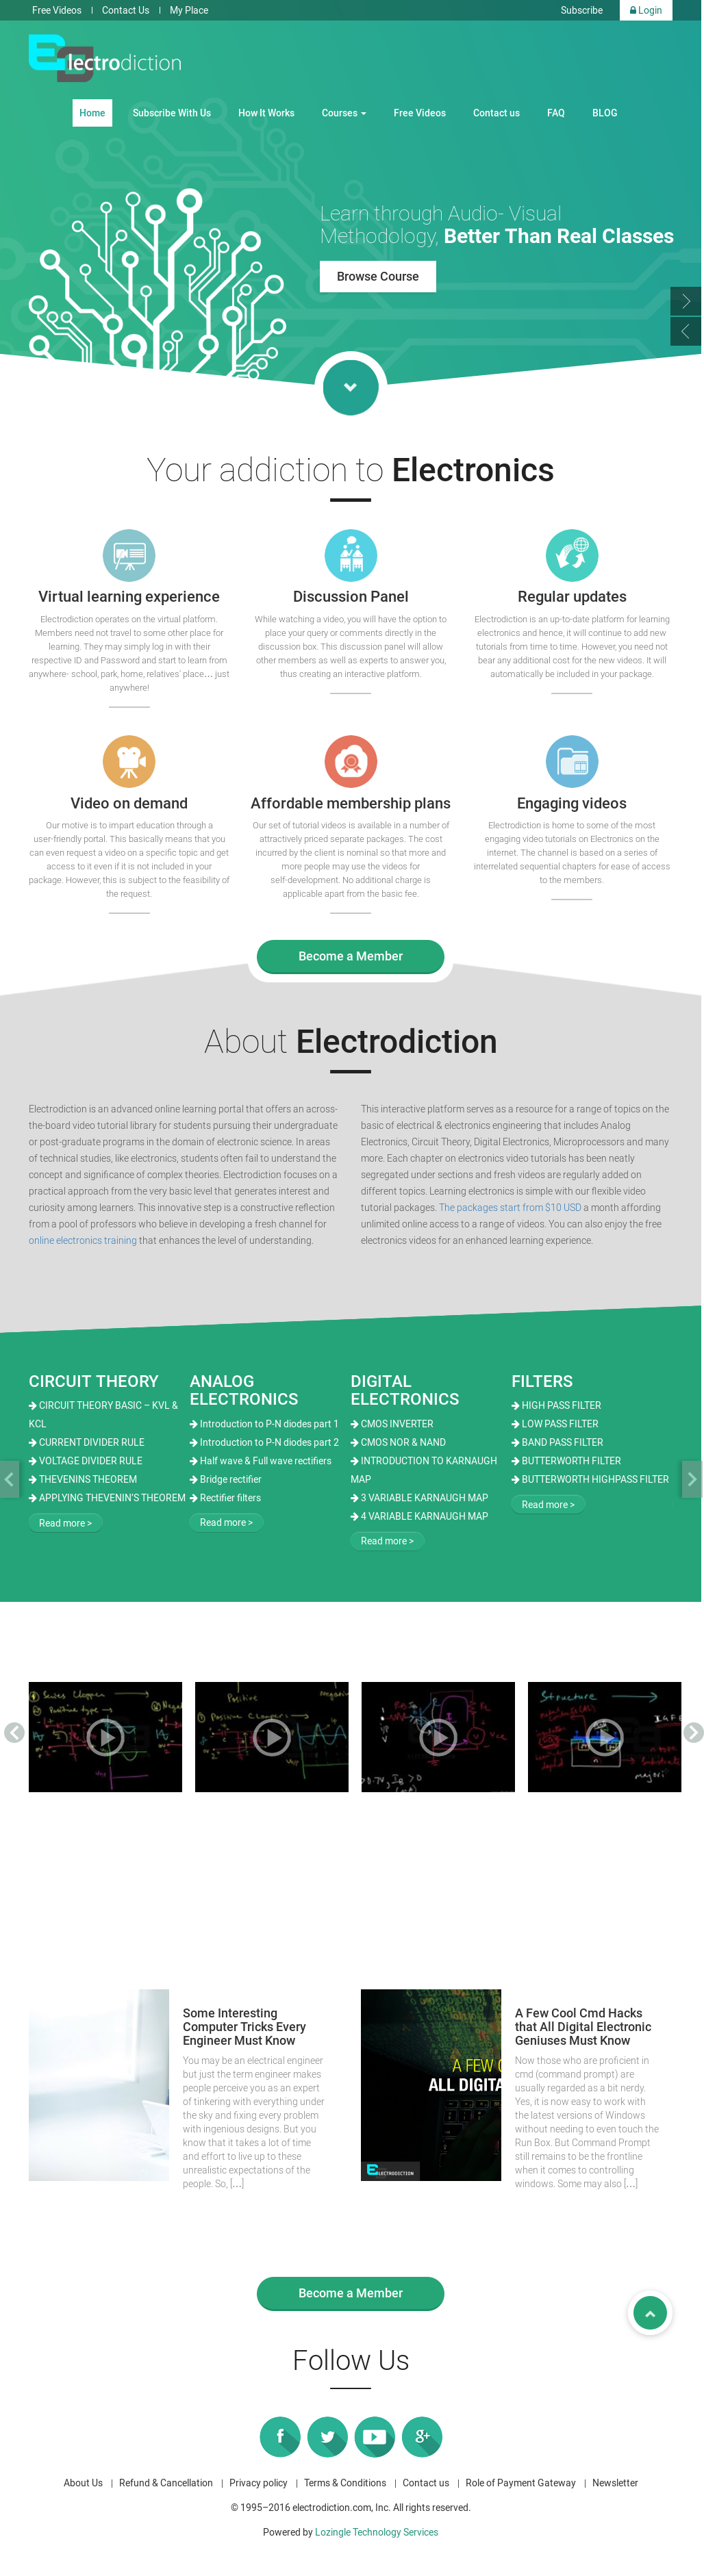 Electrodiction Competitors, Revenue and Employees - Owler